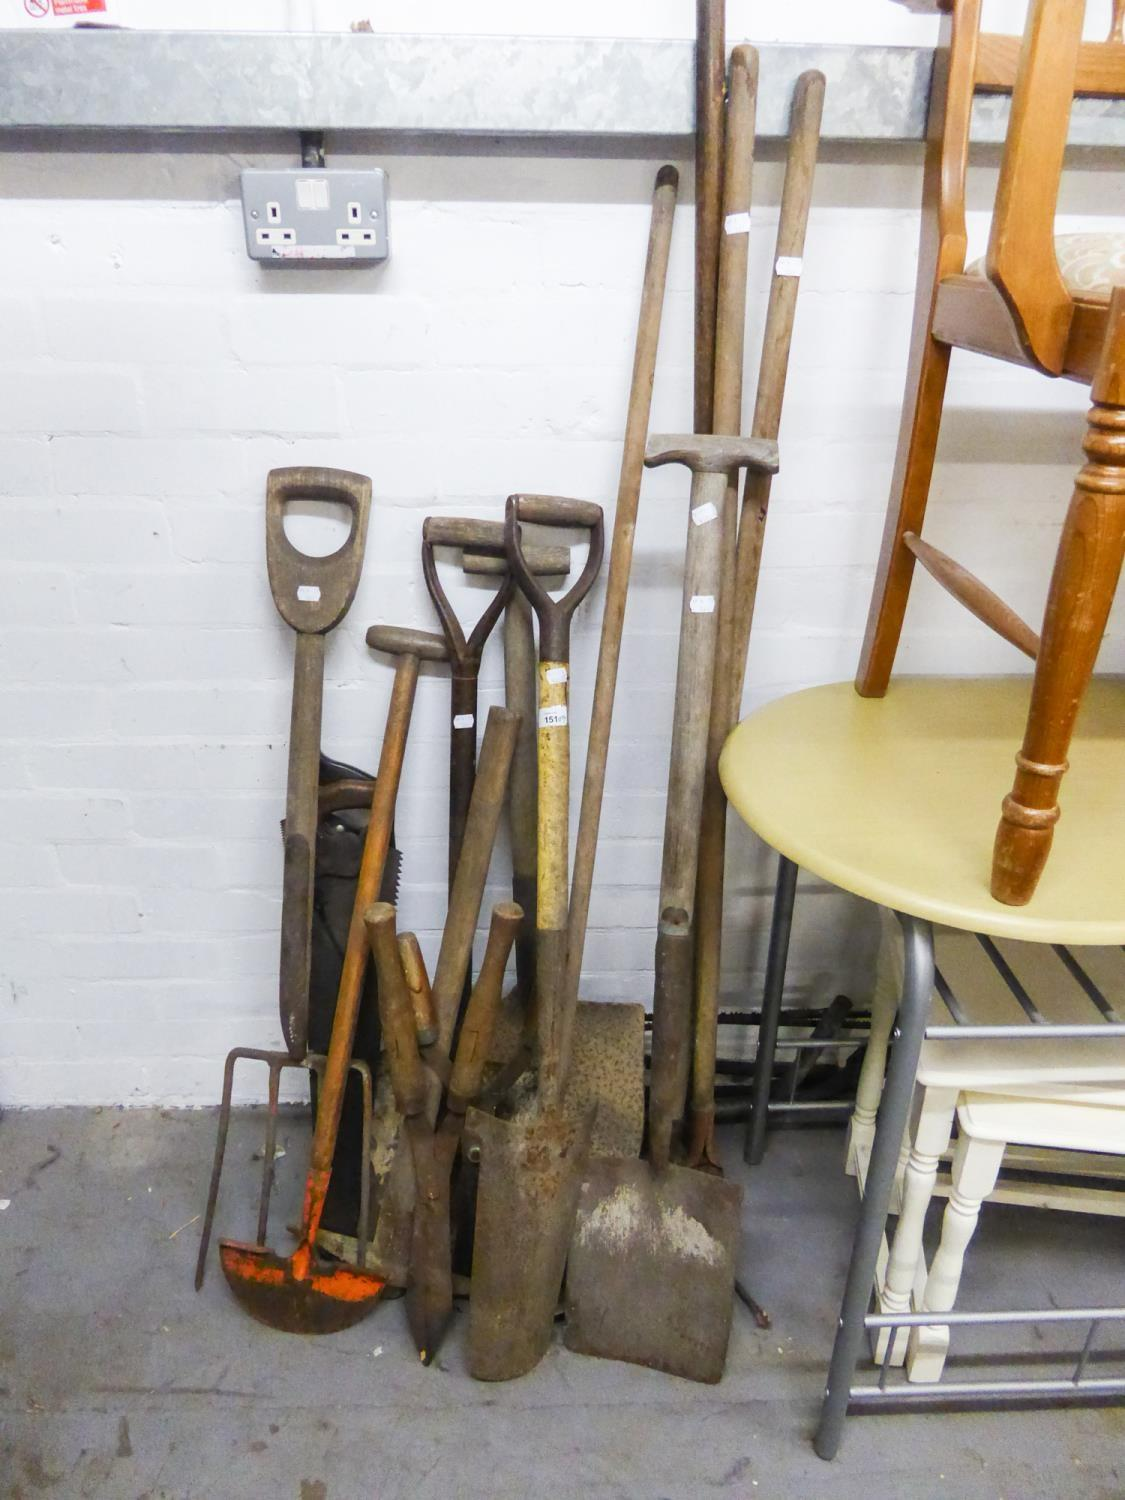 Lot 151 - A LARGE QUANTITY OF GARDEN TOOLS TO INCLUDE; SAWS, SPADES, FORKS, RAKES ETC.....